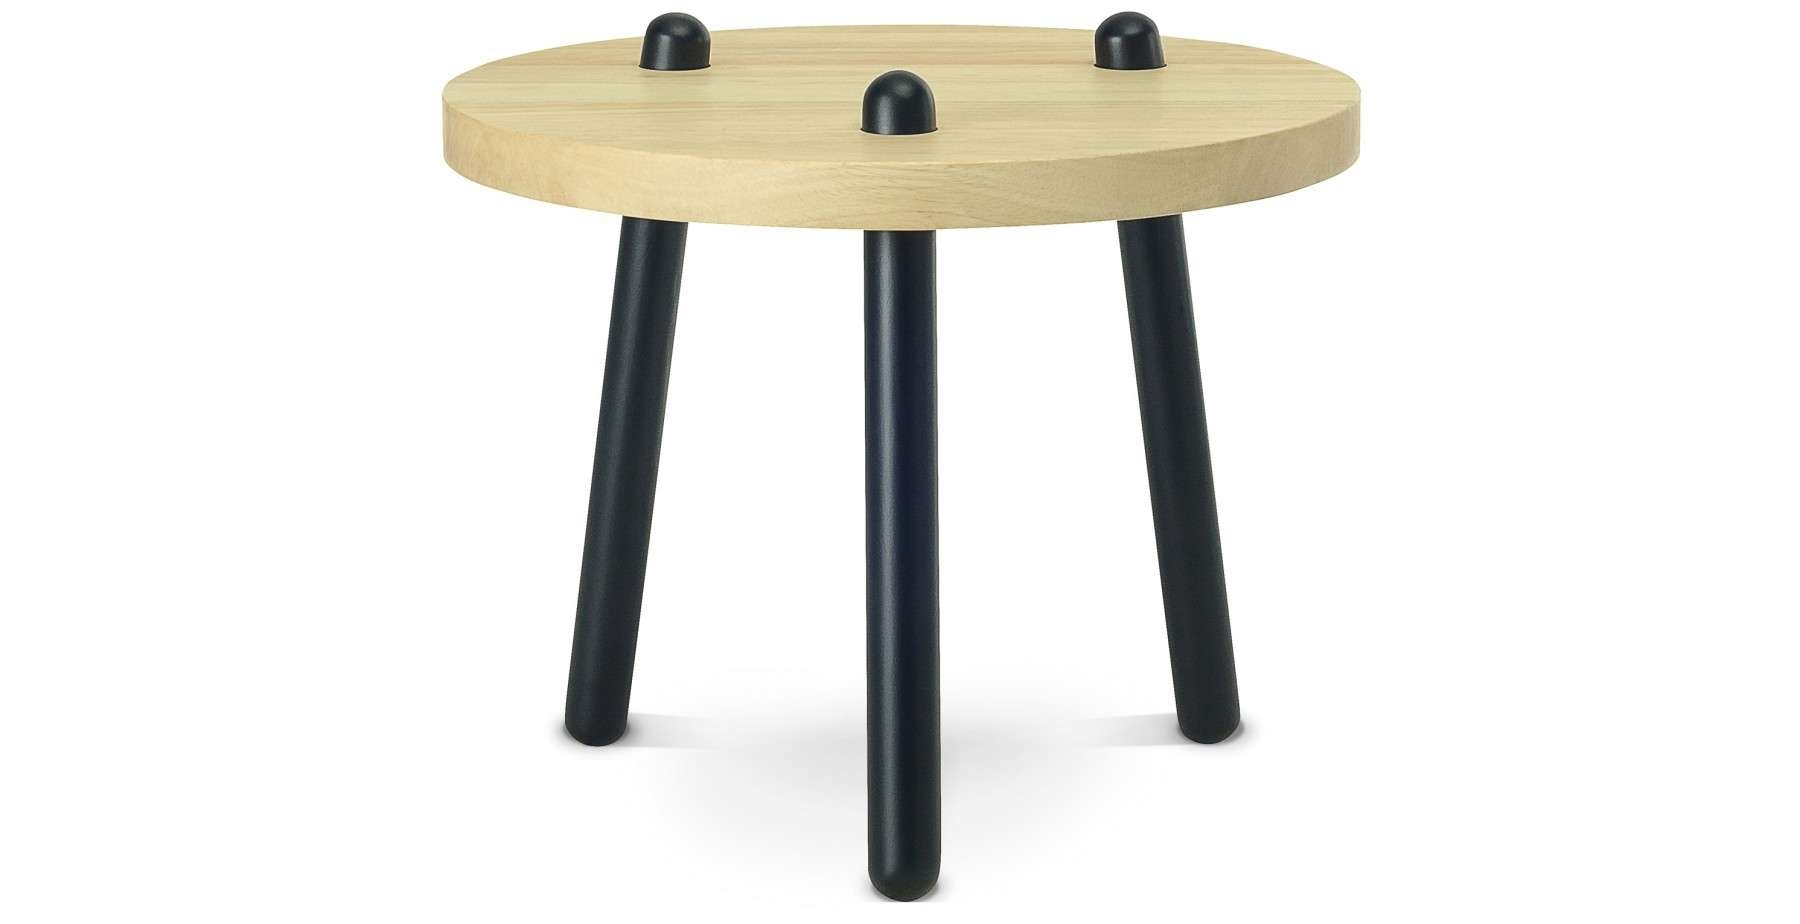 Recent High Coffee Tables Intended For Kimi High Coffee Table, Oak Fern & Grey (View 14 of 20)